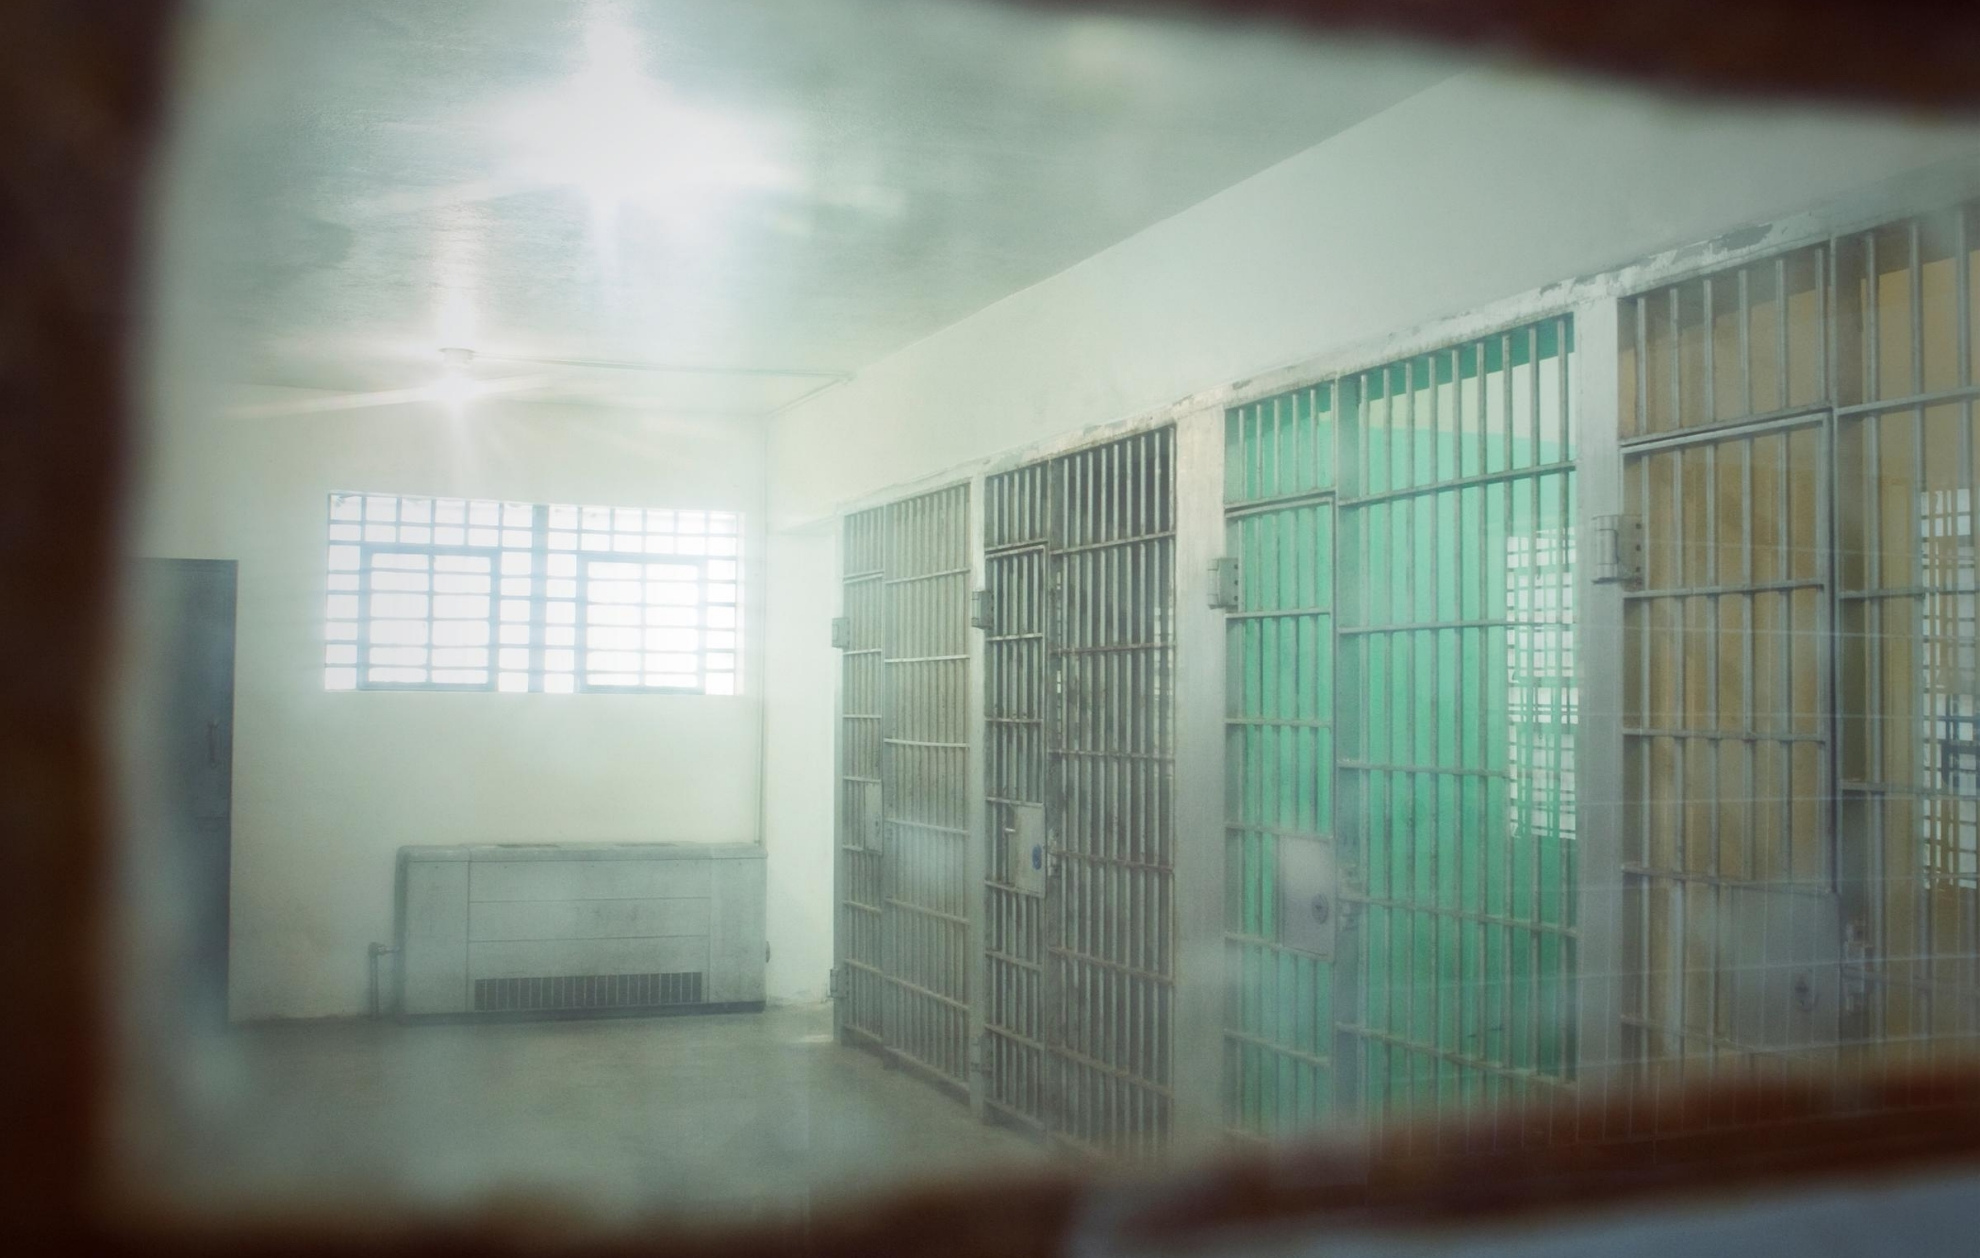 image of prison cells